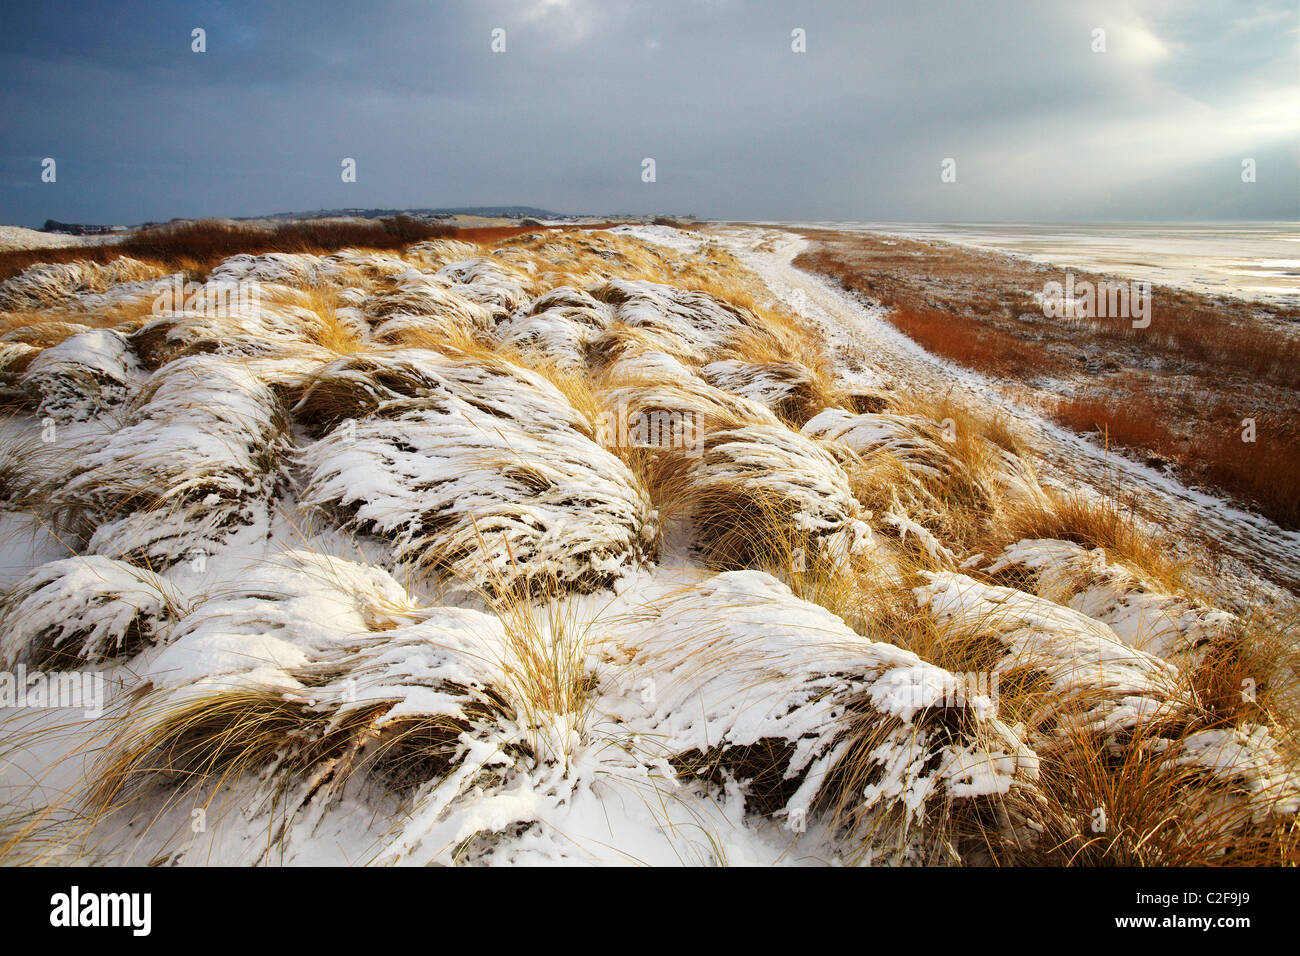 Snow covers the beach at Red Rocks. Hoylake, Wirral, Merseyside, UK - Stock Image